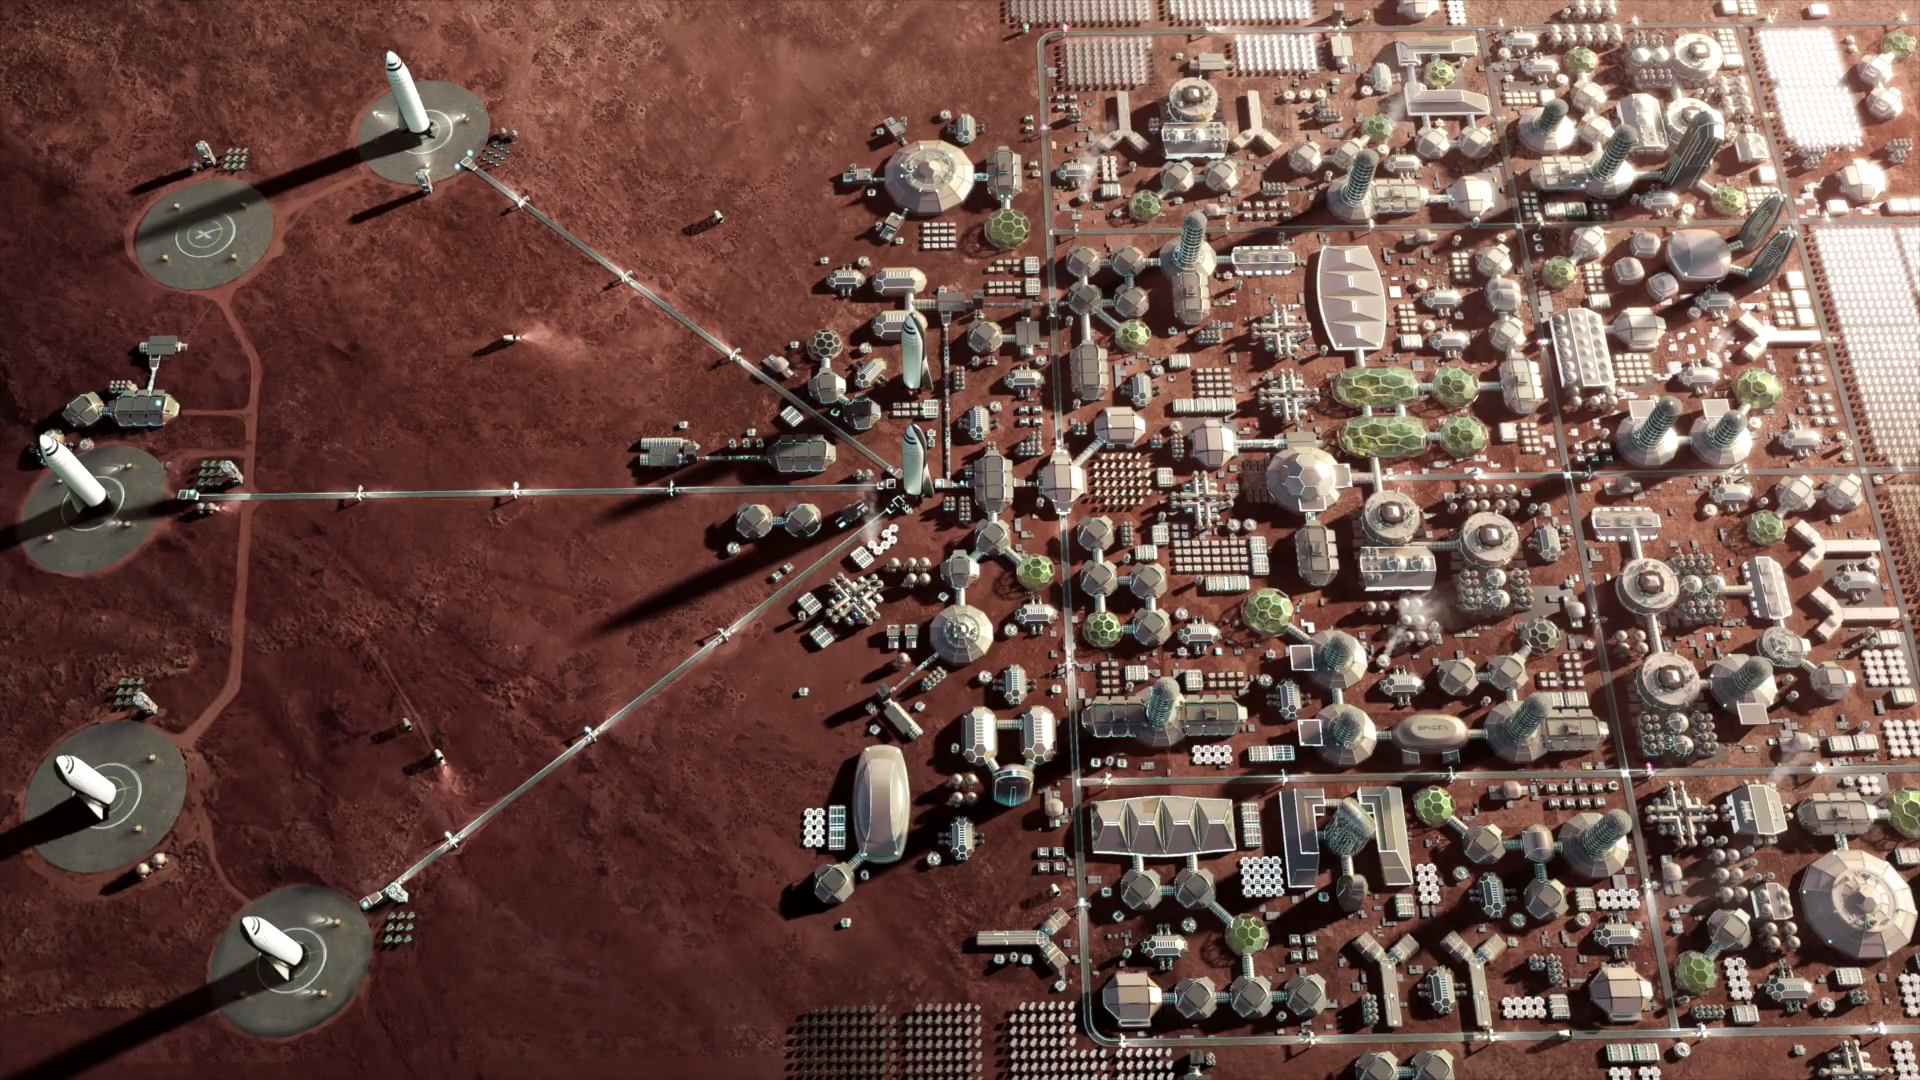 An artistic rendering of Elon Musk's Mars colonization plan. - Image Credit: SpaceX via Wikimedia Commons .